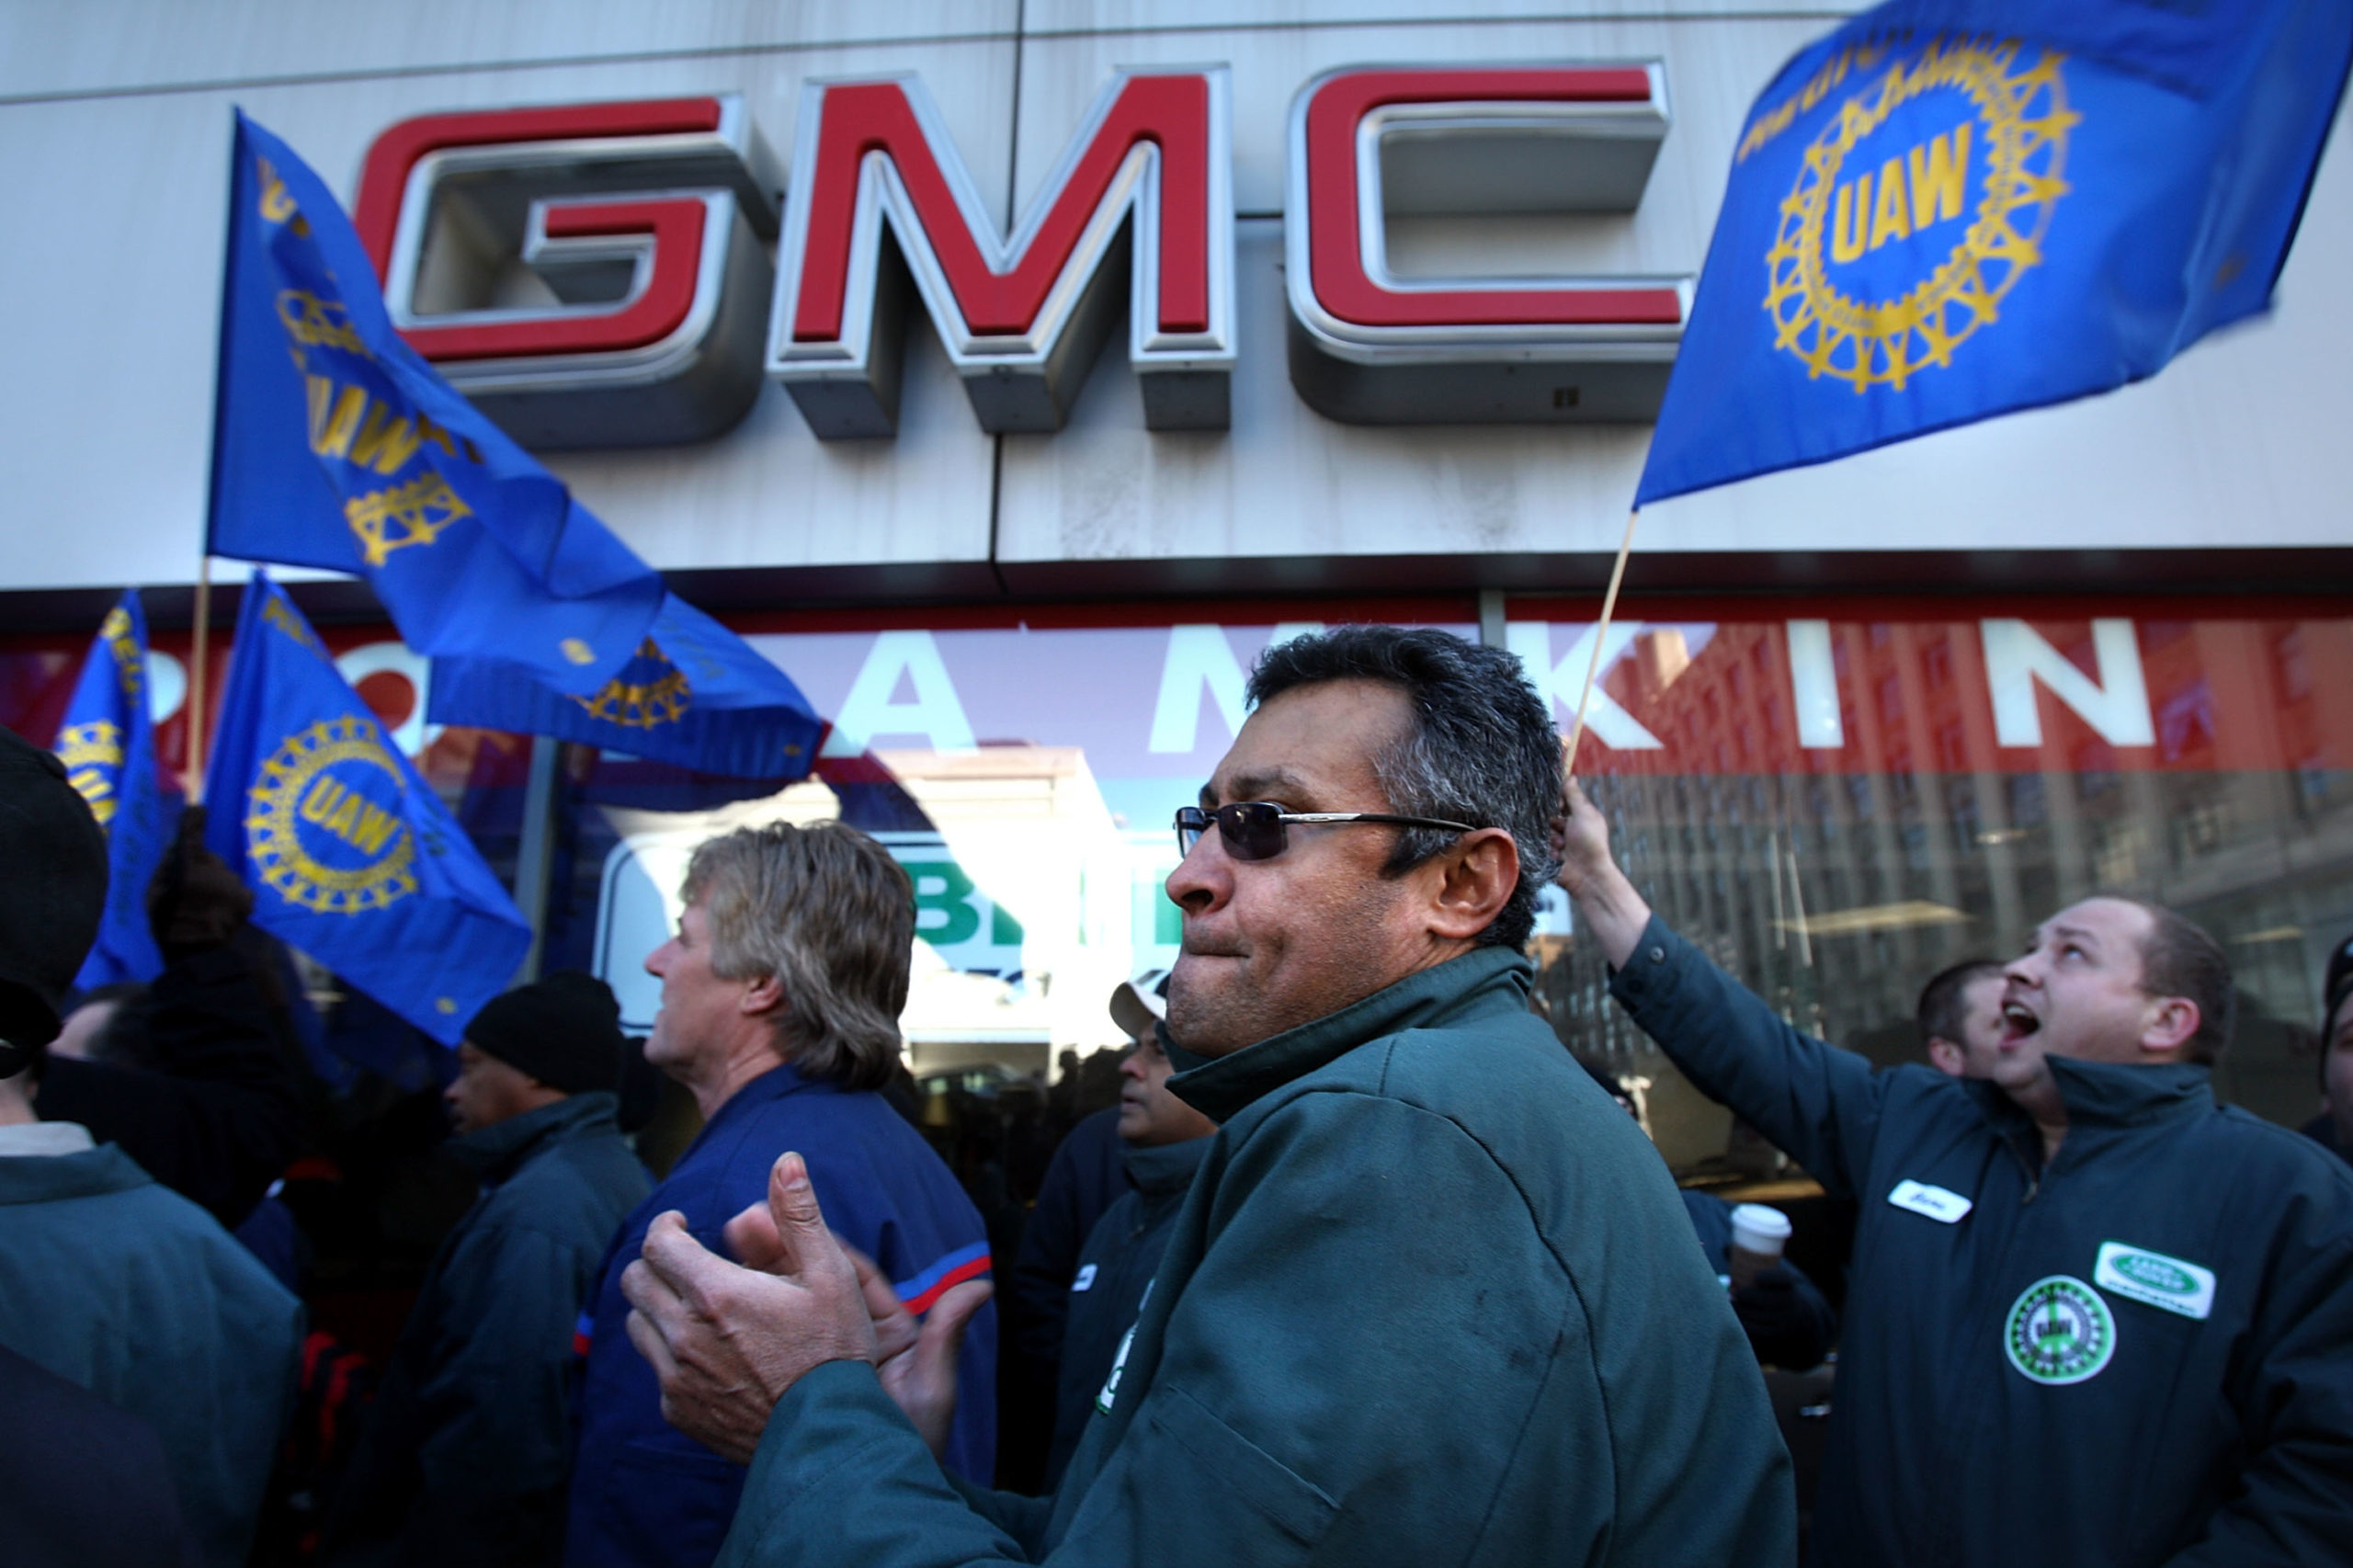 Dozens of area auto dealership employees, members of the United Auto Workers (UAW) and mechanics from both foreign and domestic car makers, rallied in support of the government bailout of the domestic auto industry December 8, 2008 in New York City. (Spencer Platt/Getty Images)